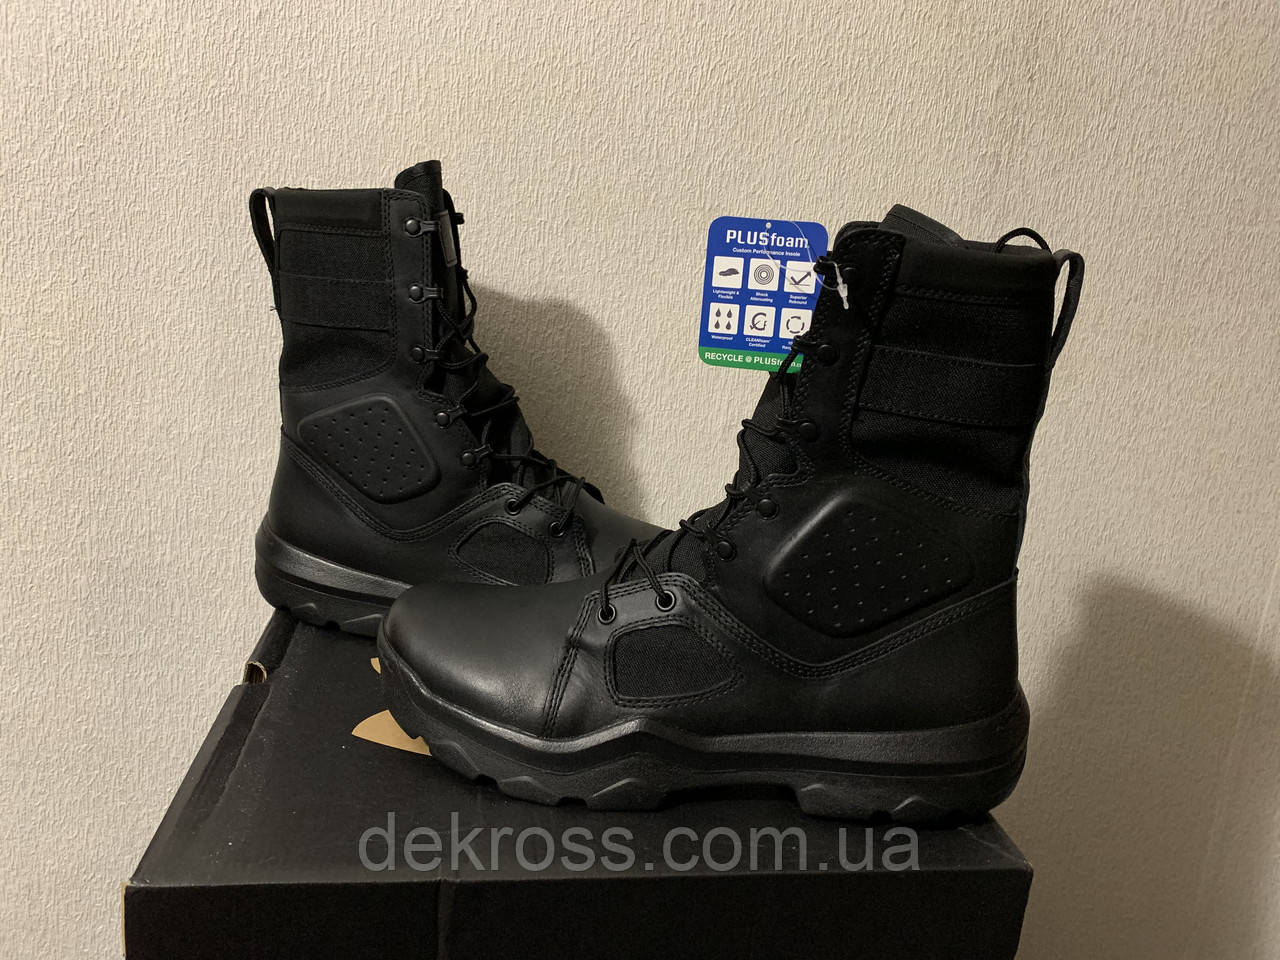 Ботинки Under Armour FNP Tactical Boots (47-48) Оригинал 1287352-001